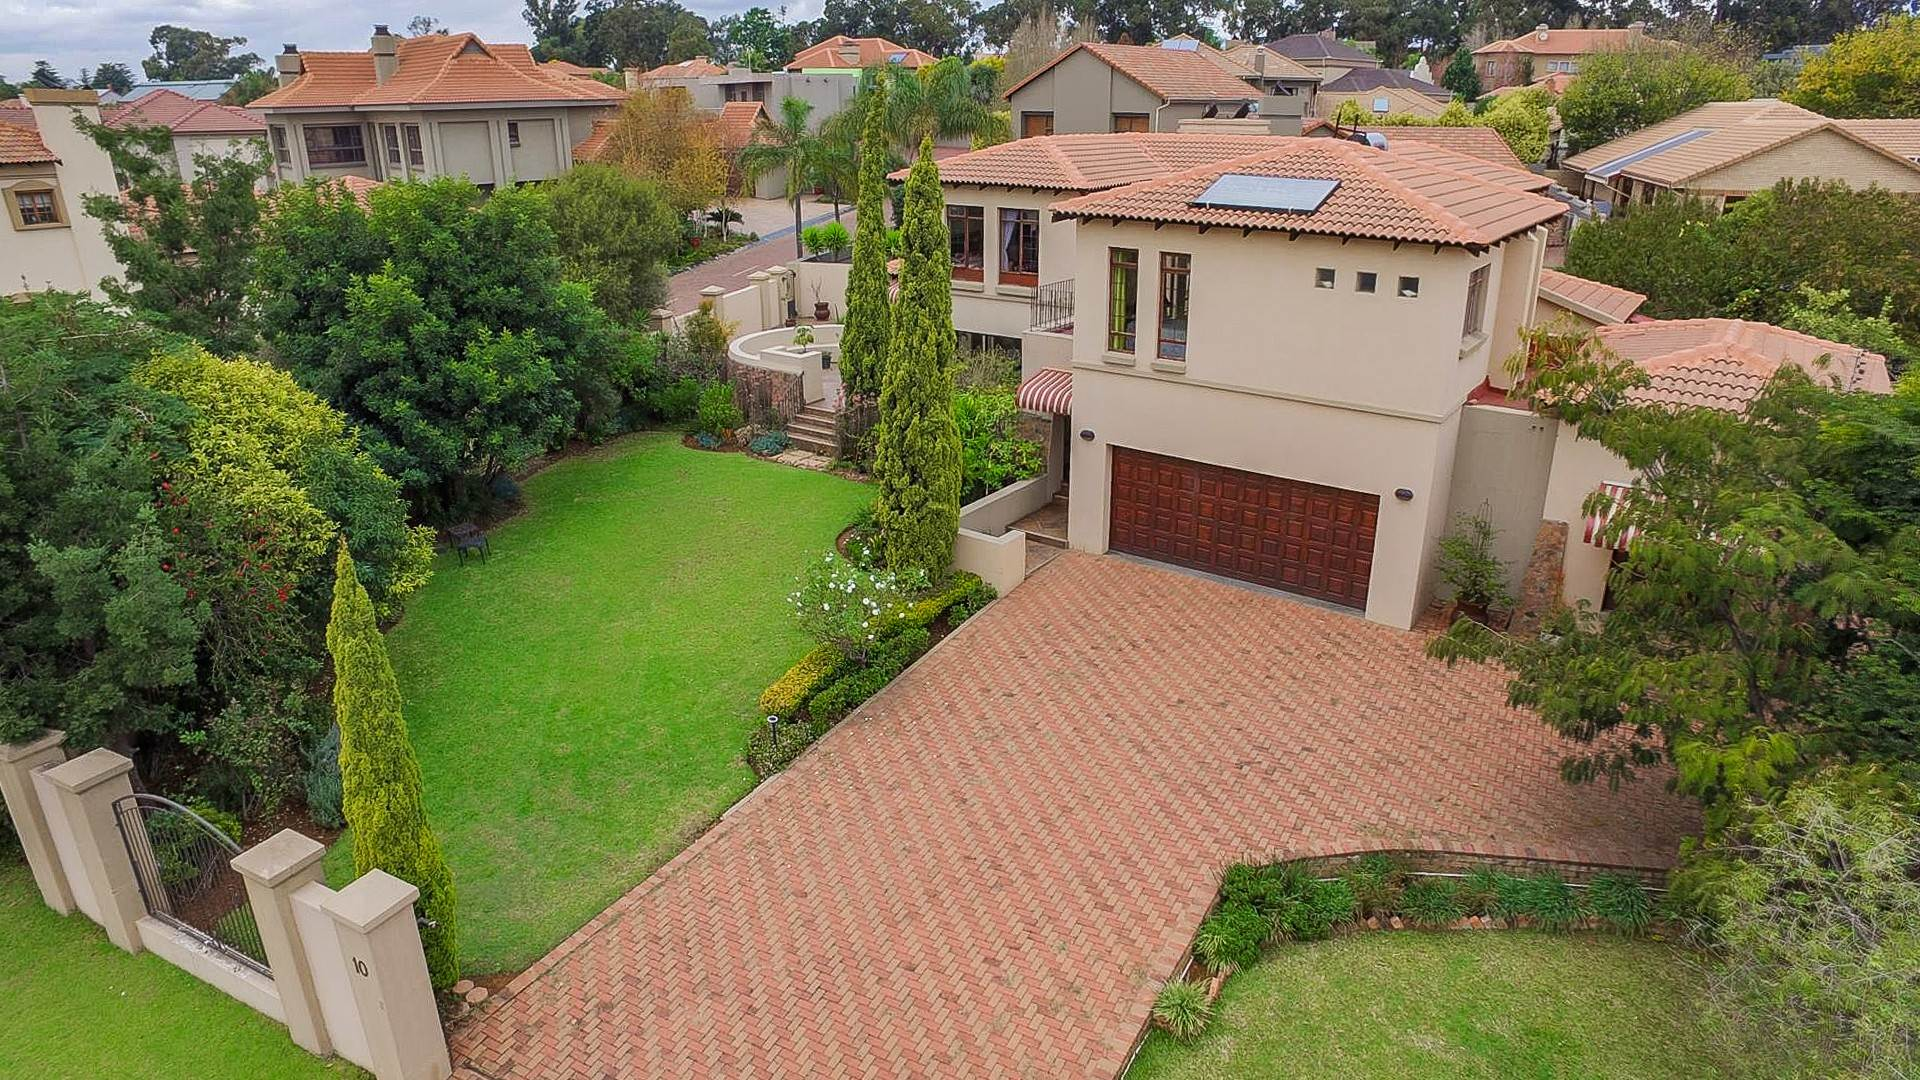 4 BedroomHouse For Sale In Clubville